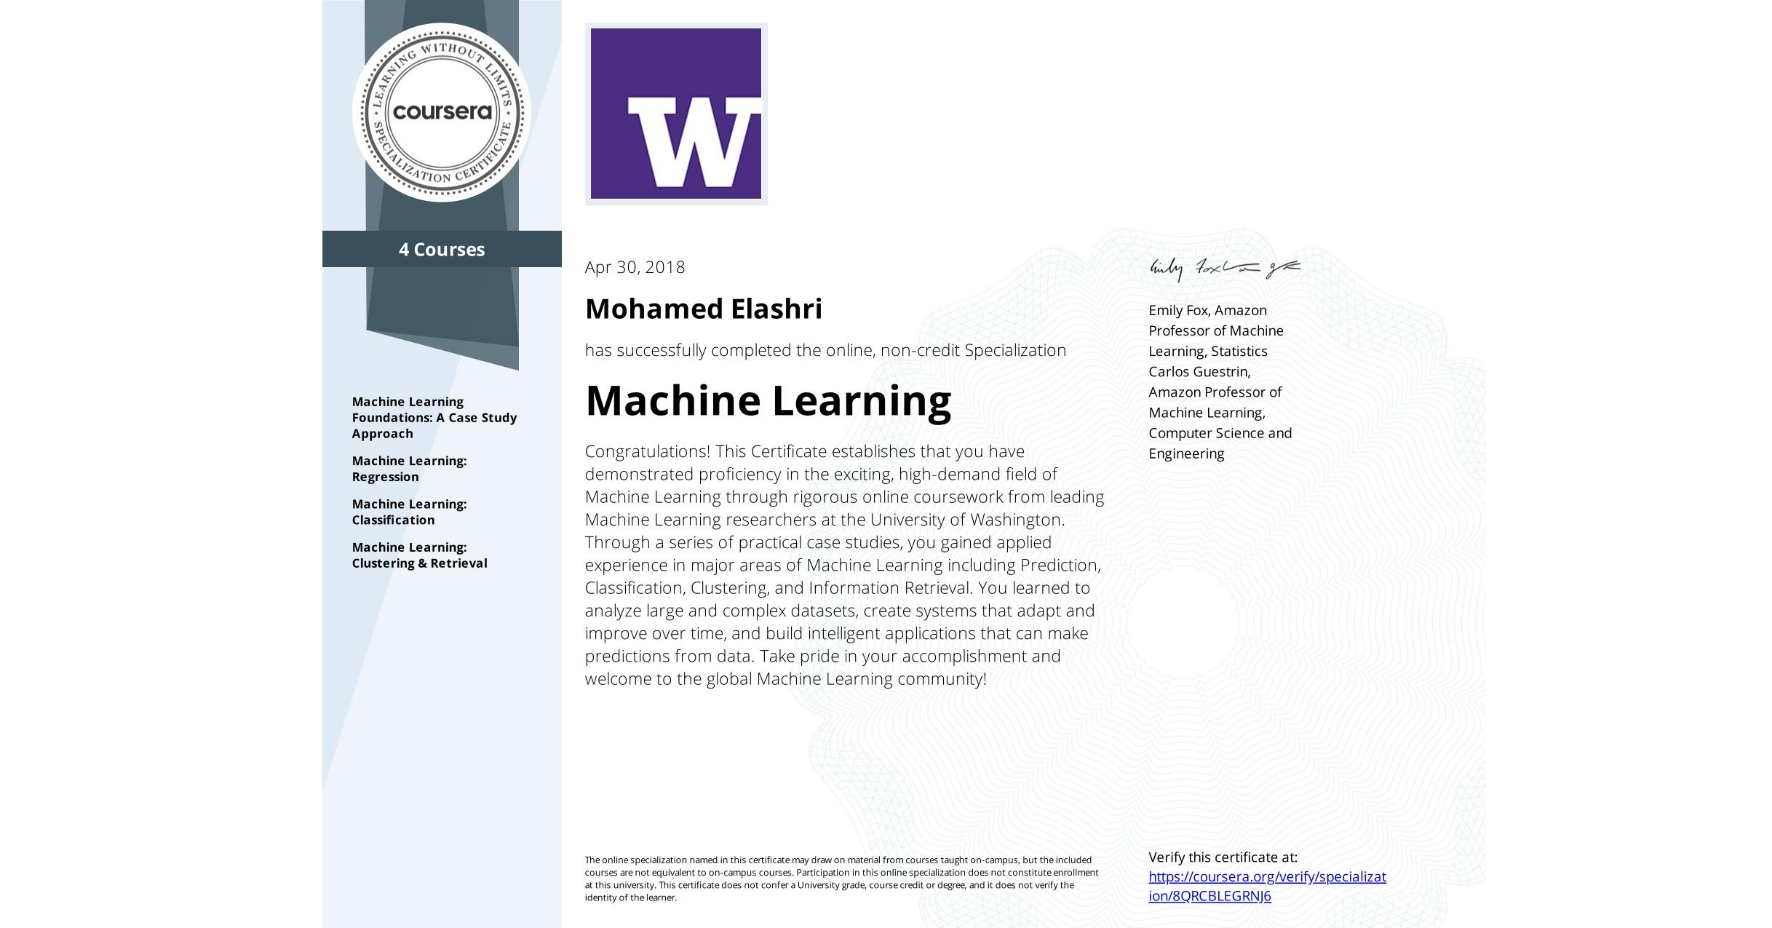 View certificate for Mohamed Elashri, Machine Learning, offered through Coursera. Congratulations! This Certificate establishes that you have demonstrated proficiency in the exciting, high-demand field of Machine Learning through rigorous online coursework from leading Machine Learning researchers at the University of Washington. Through a series of practical case studies, you gained applied experience in major areas of Machine Learning including Prediction, Classification, Clustering, and Information Retrieval. You learned to analyze large and complex datasets, create systems that adapt and improve over time, and build intelligent applications that can make predictions from data. Take pride in your accomplishment and welcome to the global Machine Learning community!